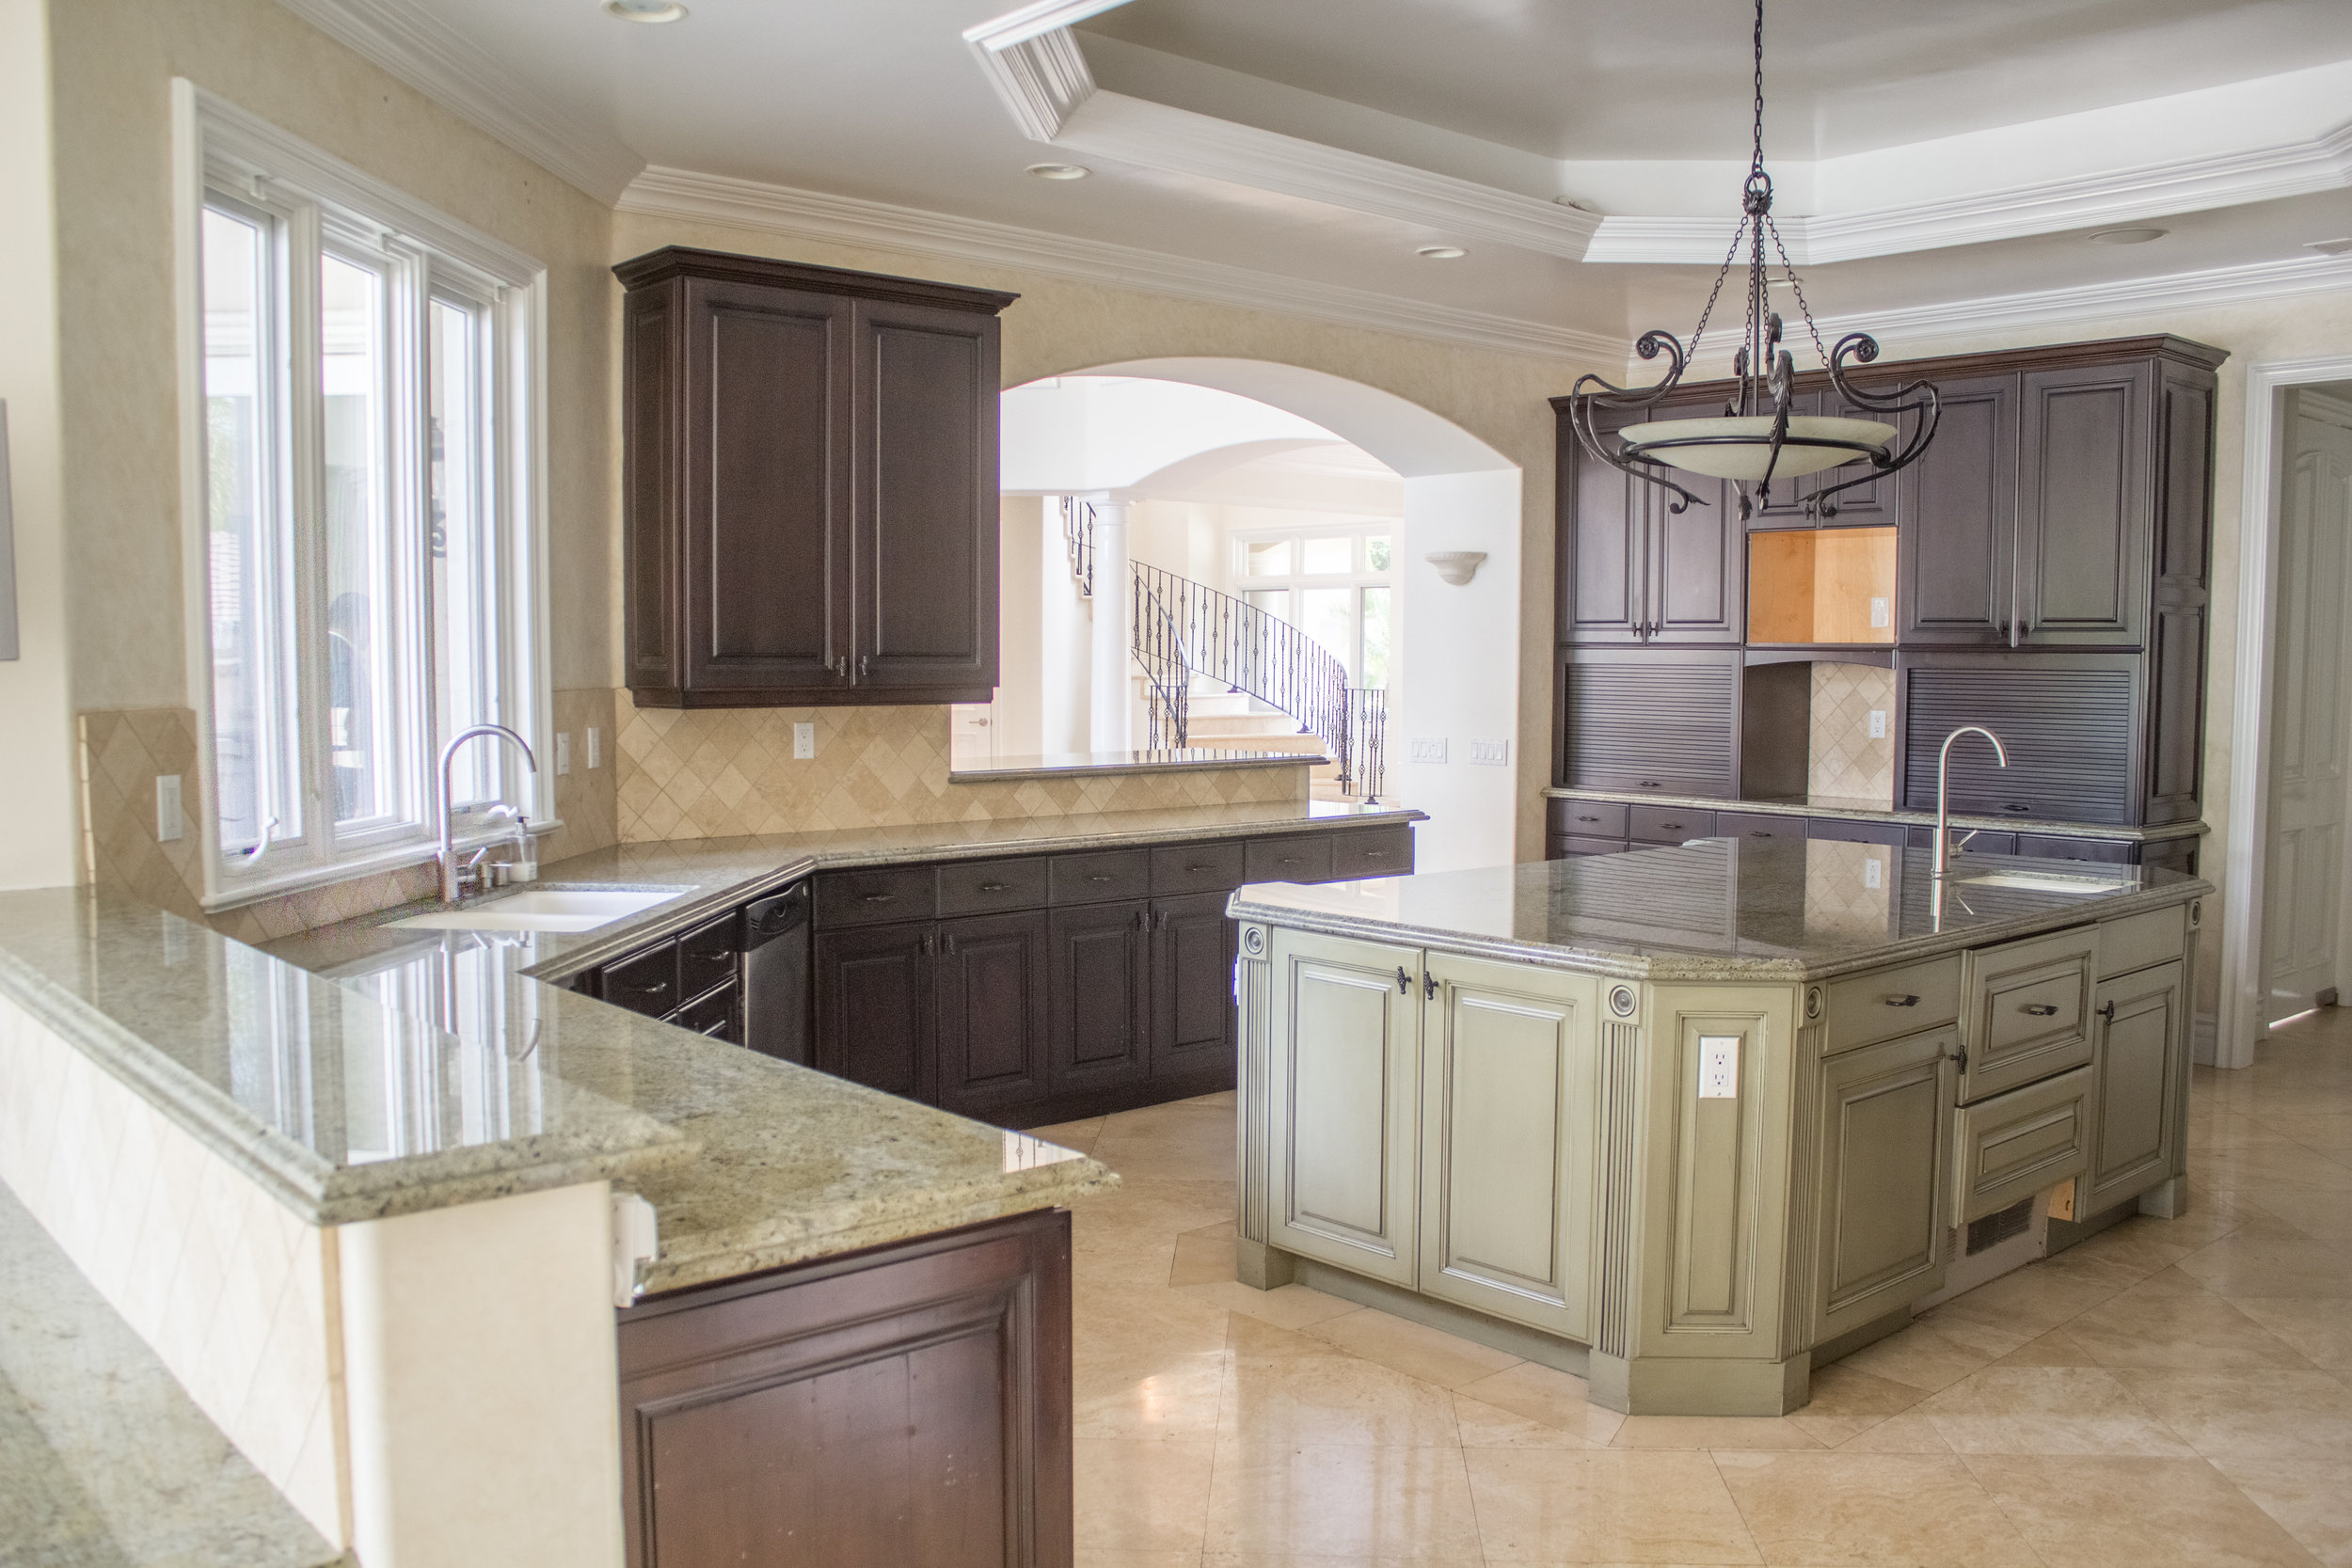 Real Estate Photography of Bright Kitchen